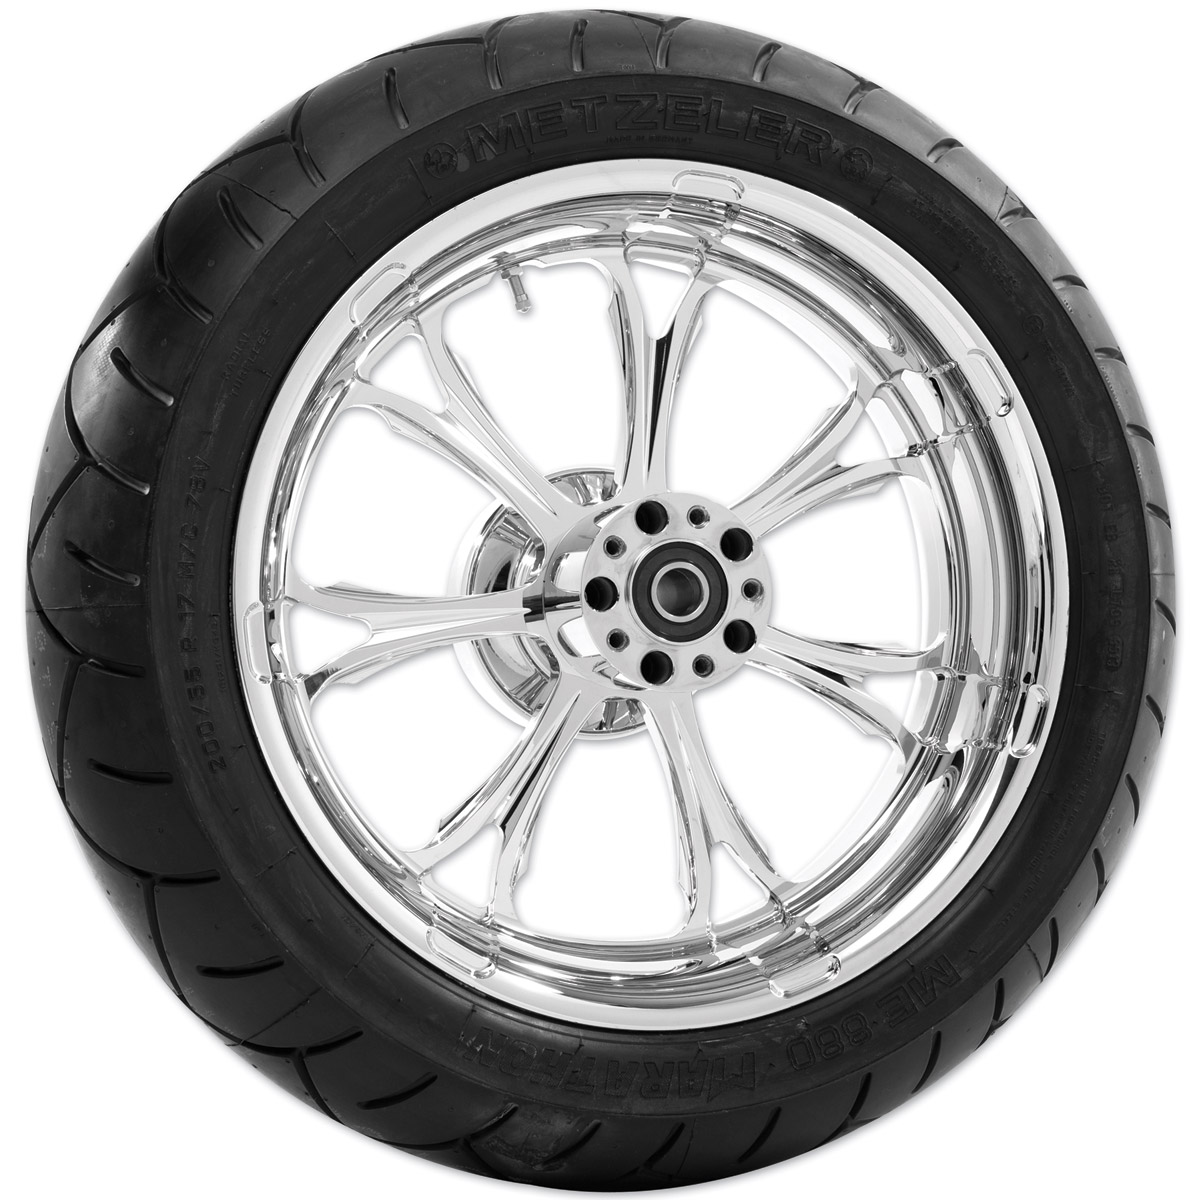 Performance Machine Paramount Chrome Rear Wheel Package, 17″ x 6″ without ABS